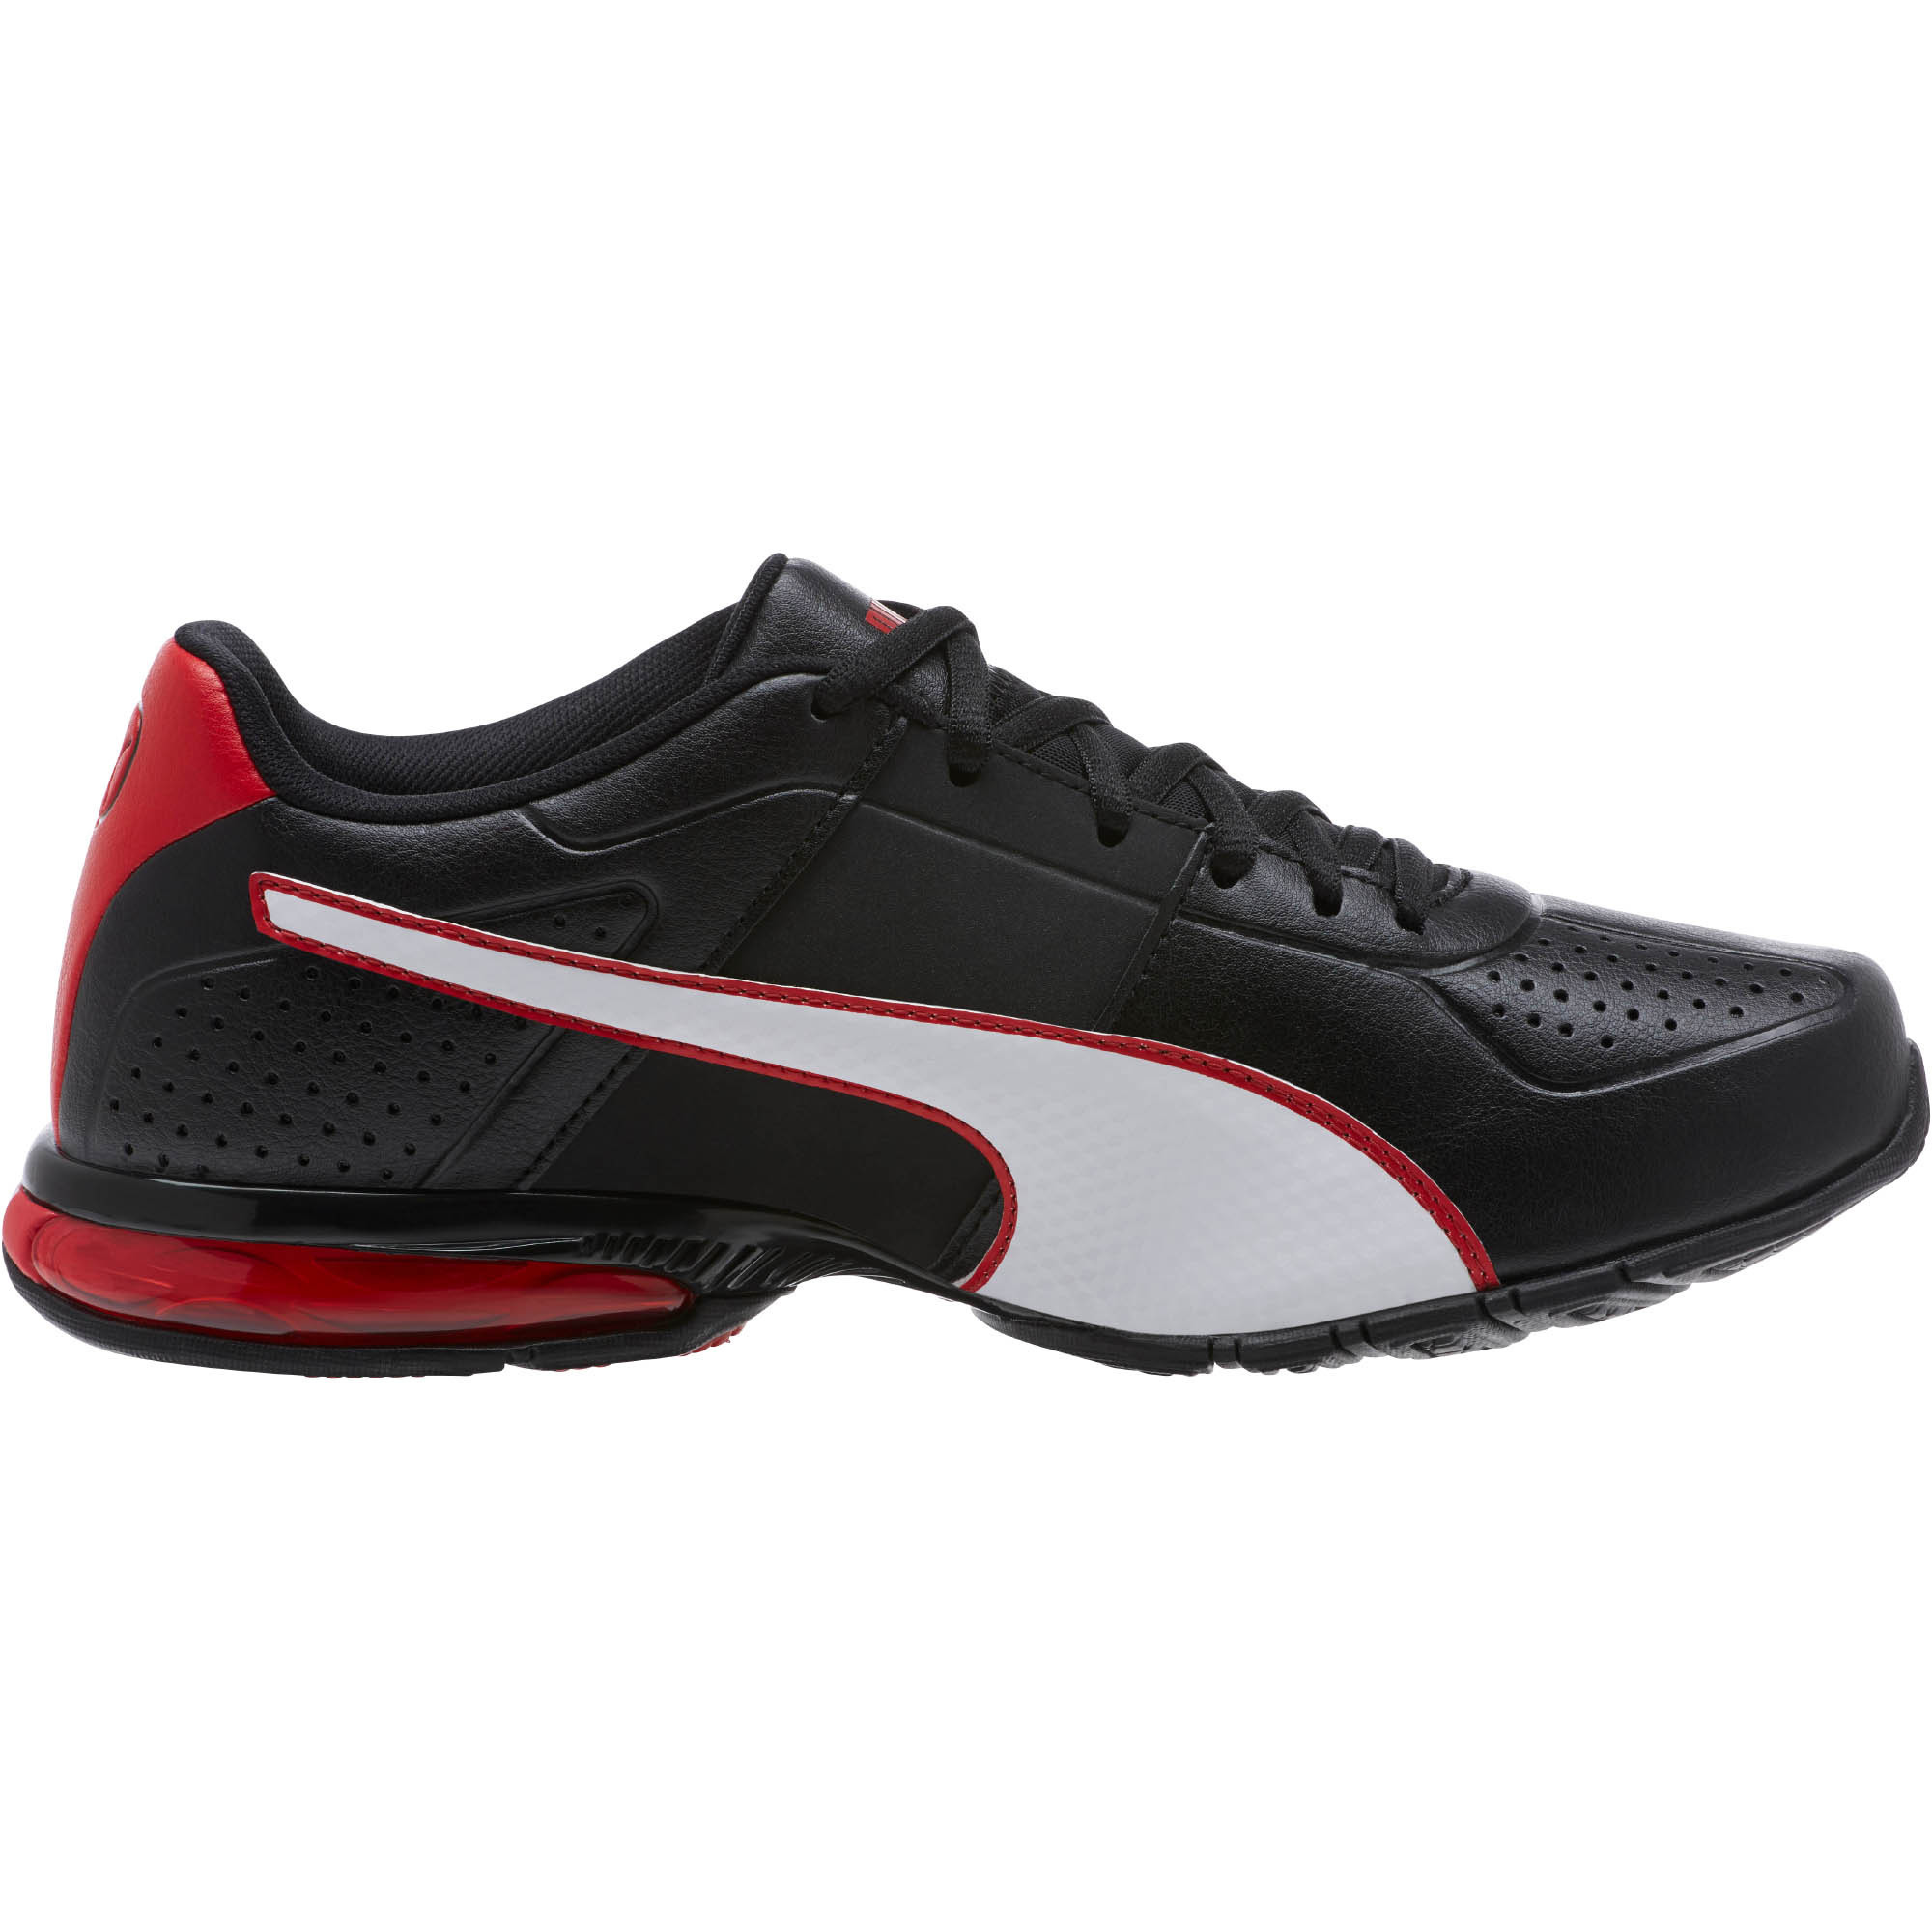 PUMA-CELL-Surin-2-FM-Men-039-s-Running-Shoes-Men-Shoe-Running thumbnail 17